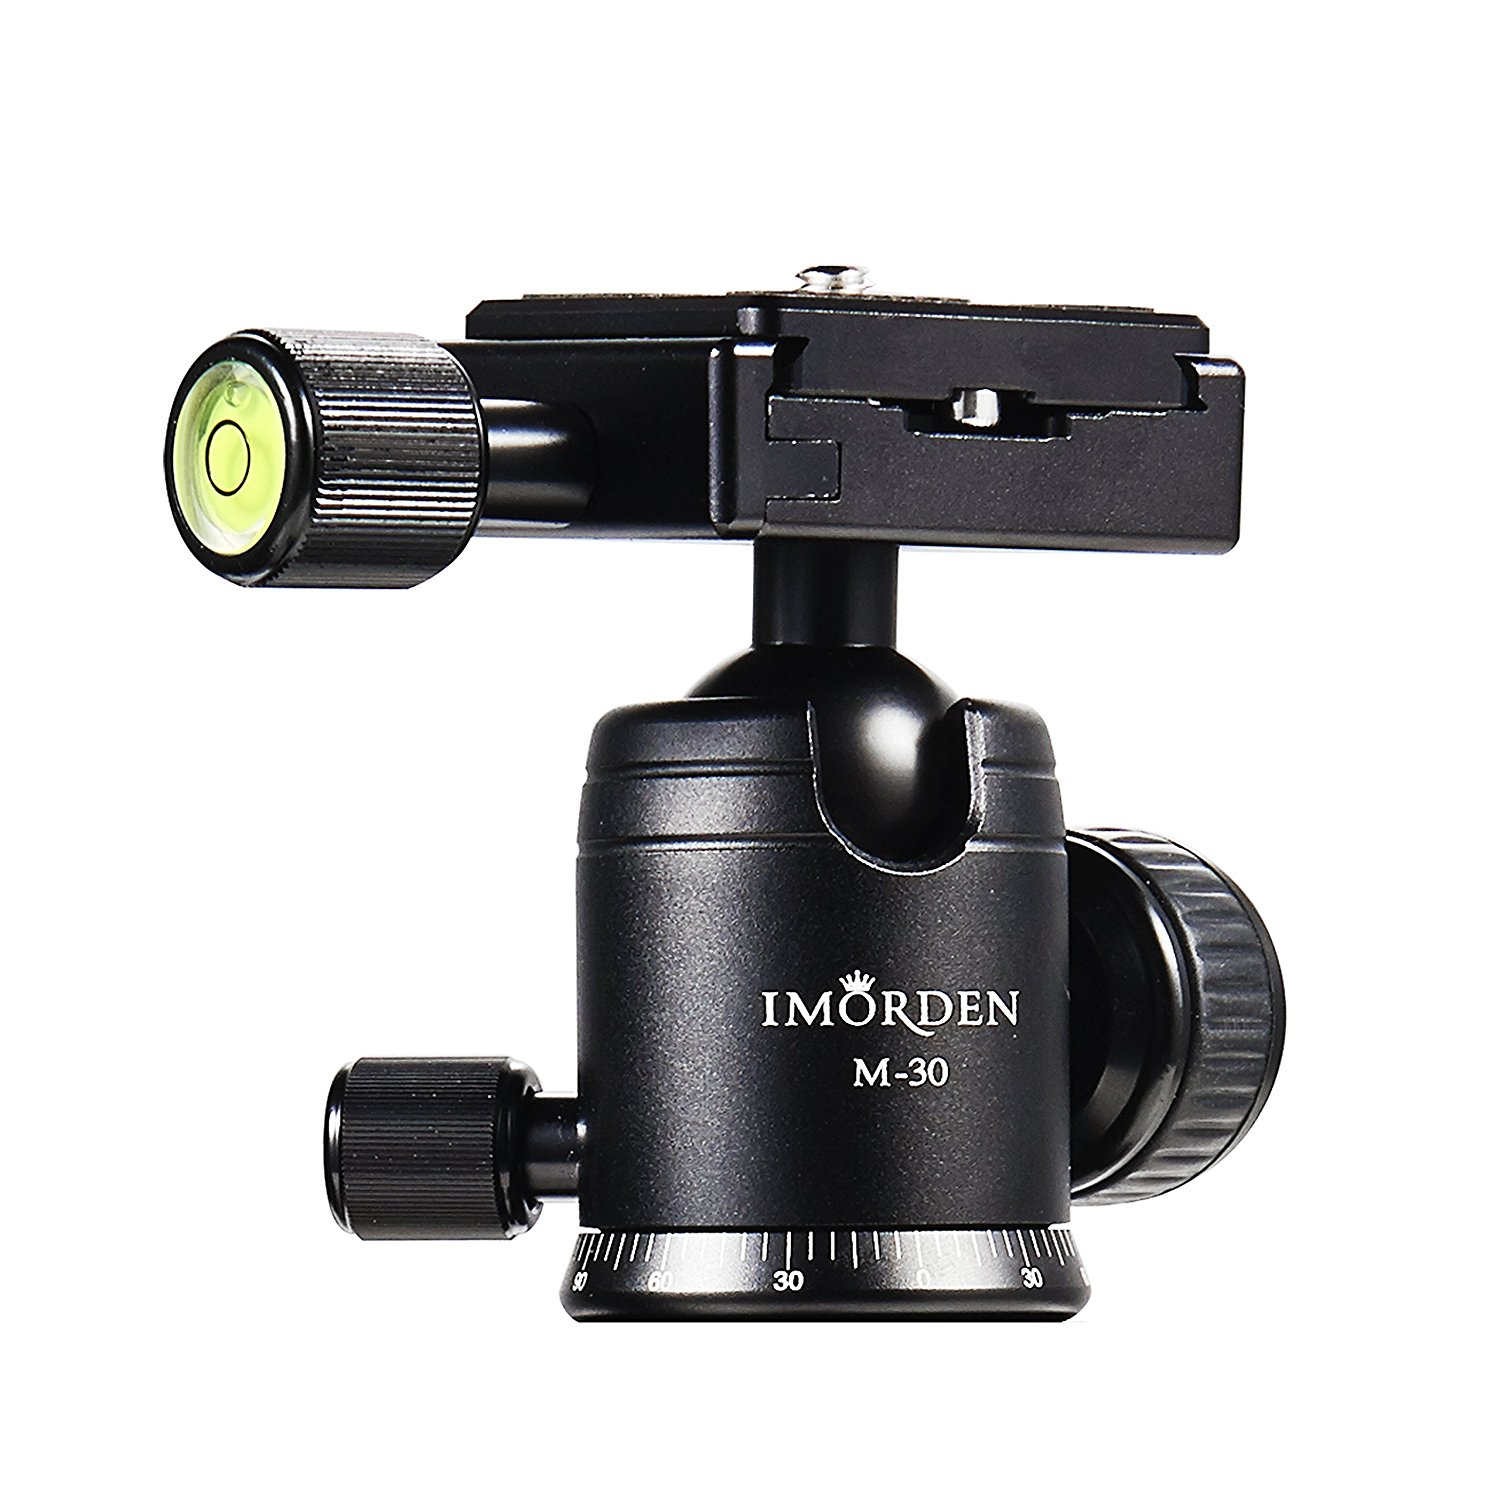 IMORDEN M-30 Camera Tripod Ball Head 360° Fluid Rotation Panoramic Ball Head with 1/4'' Screw on Arca Swiss Quick Release Plate for Tripod, Monopod, Slider, Shoulder Rig, DSLR Camera, Camcorder